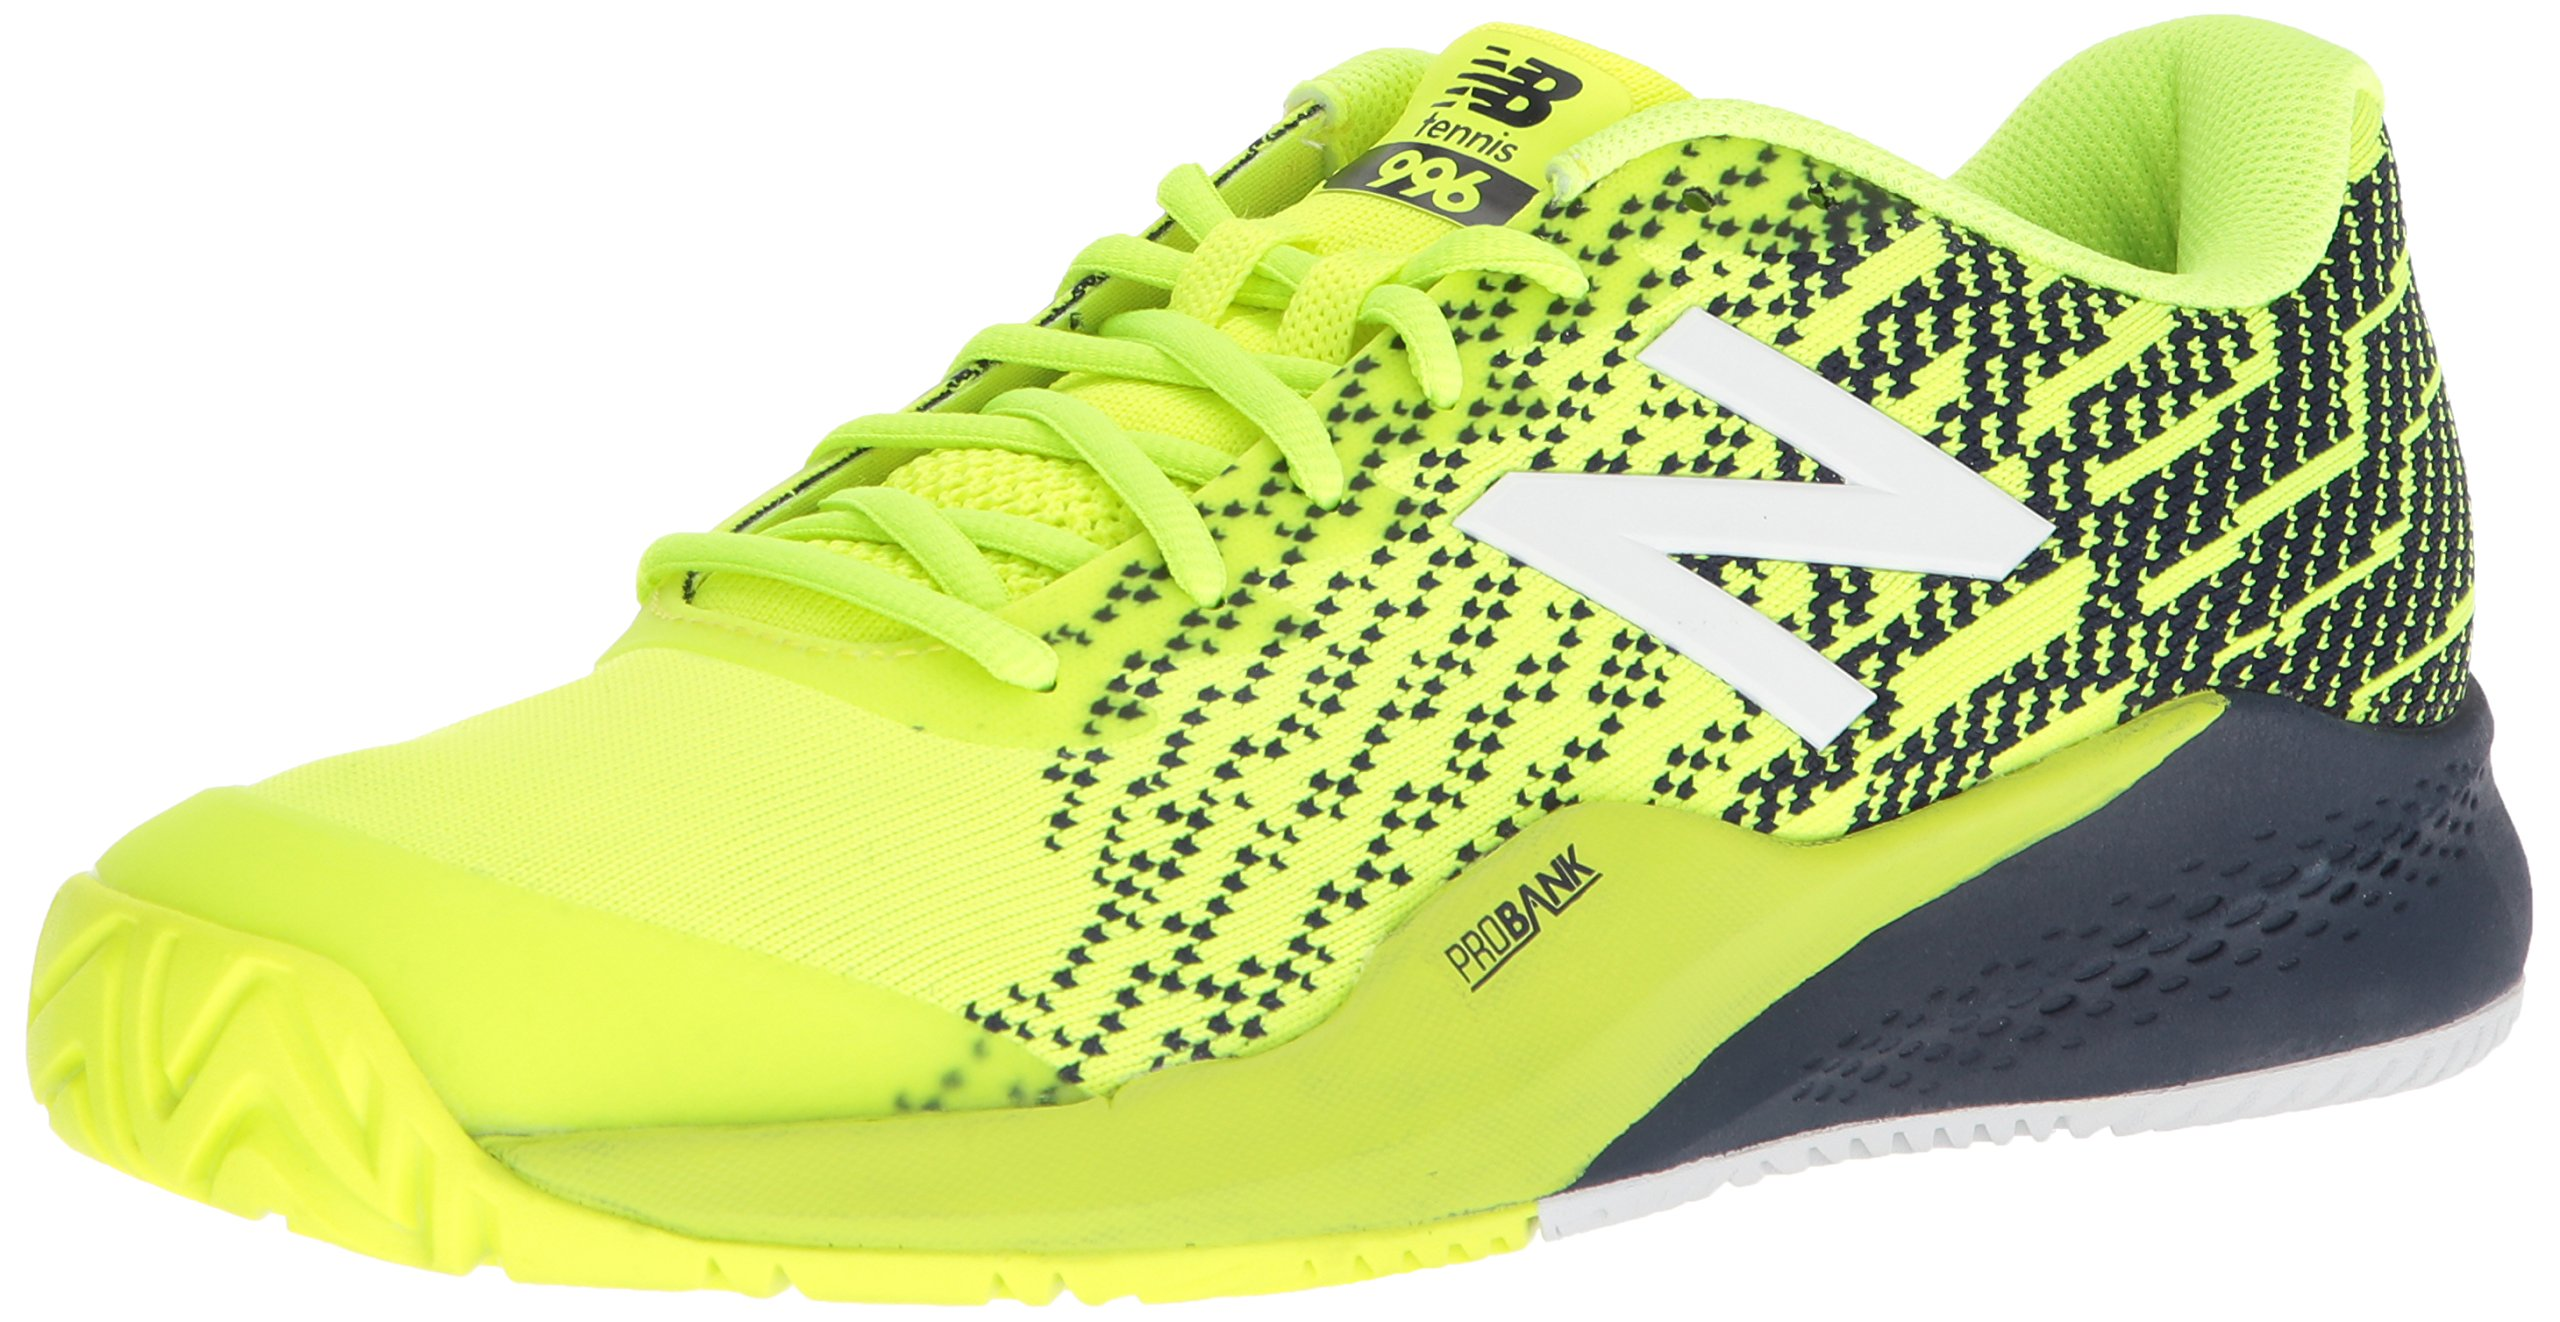 New Balance Men's 996v3 Tennis Shoe, Hi Lite/Pigment, 11 2E US by New Balance